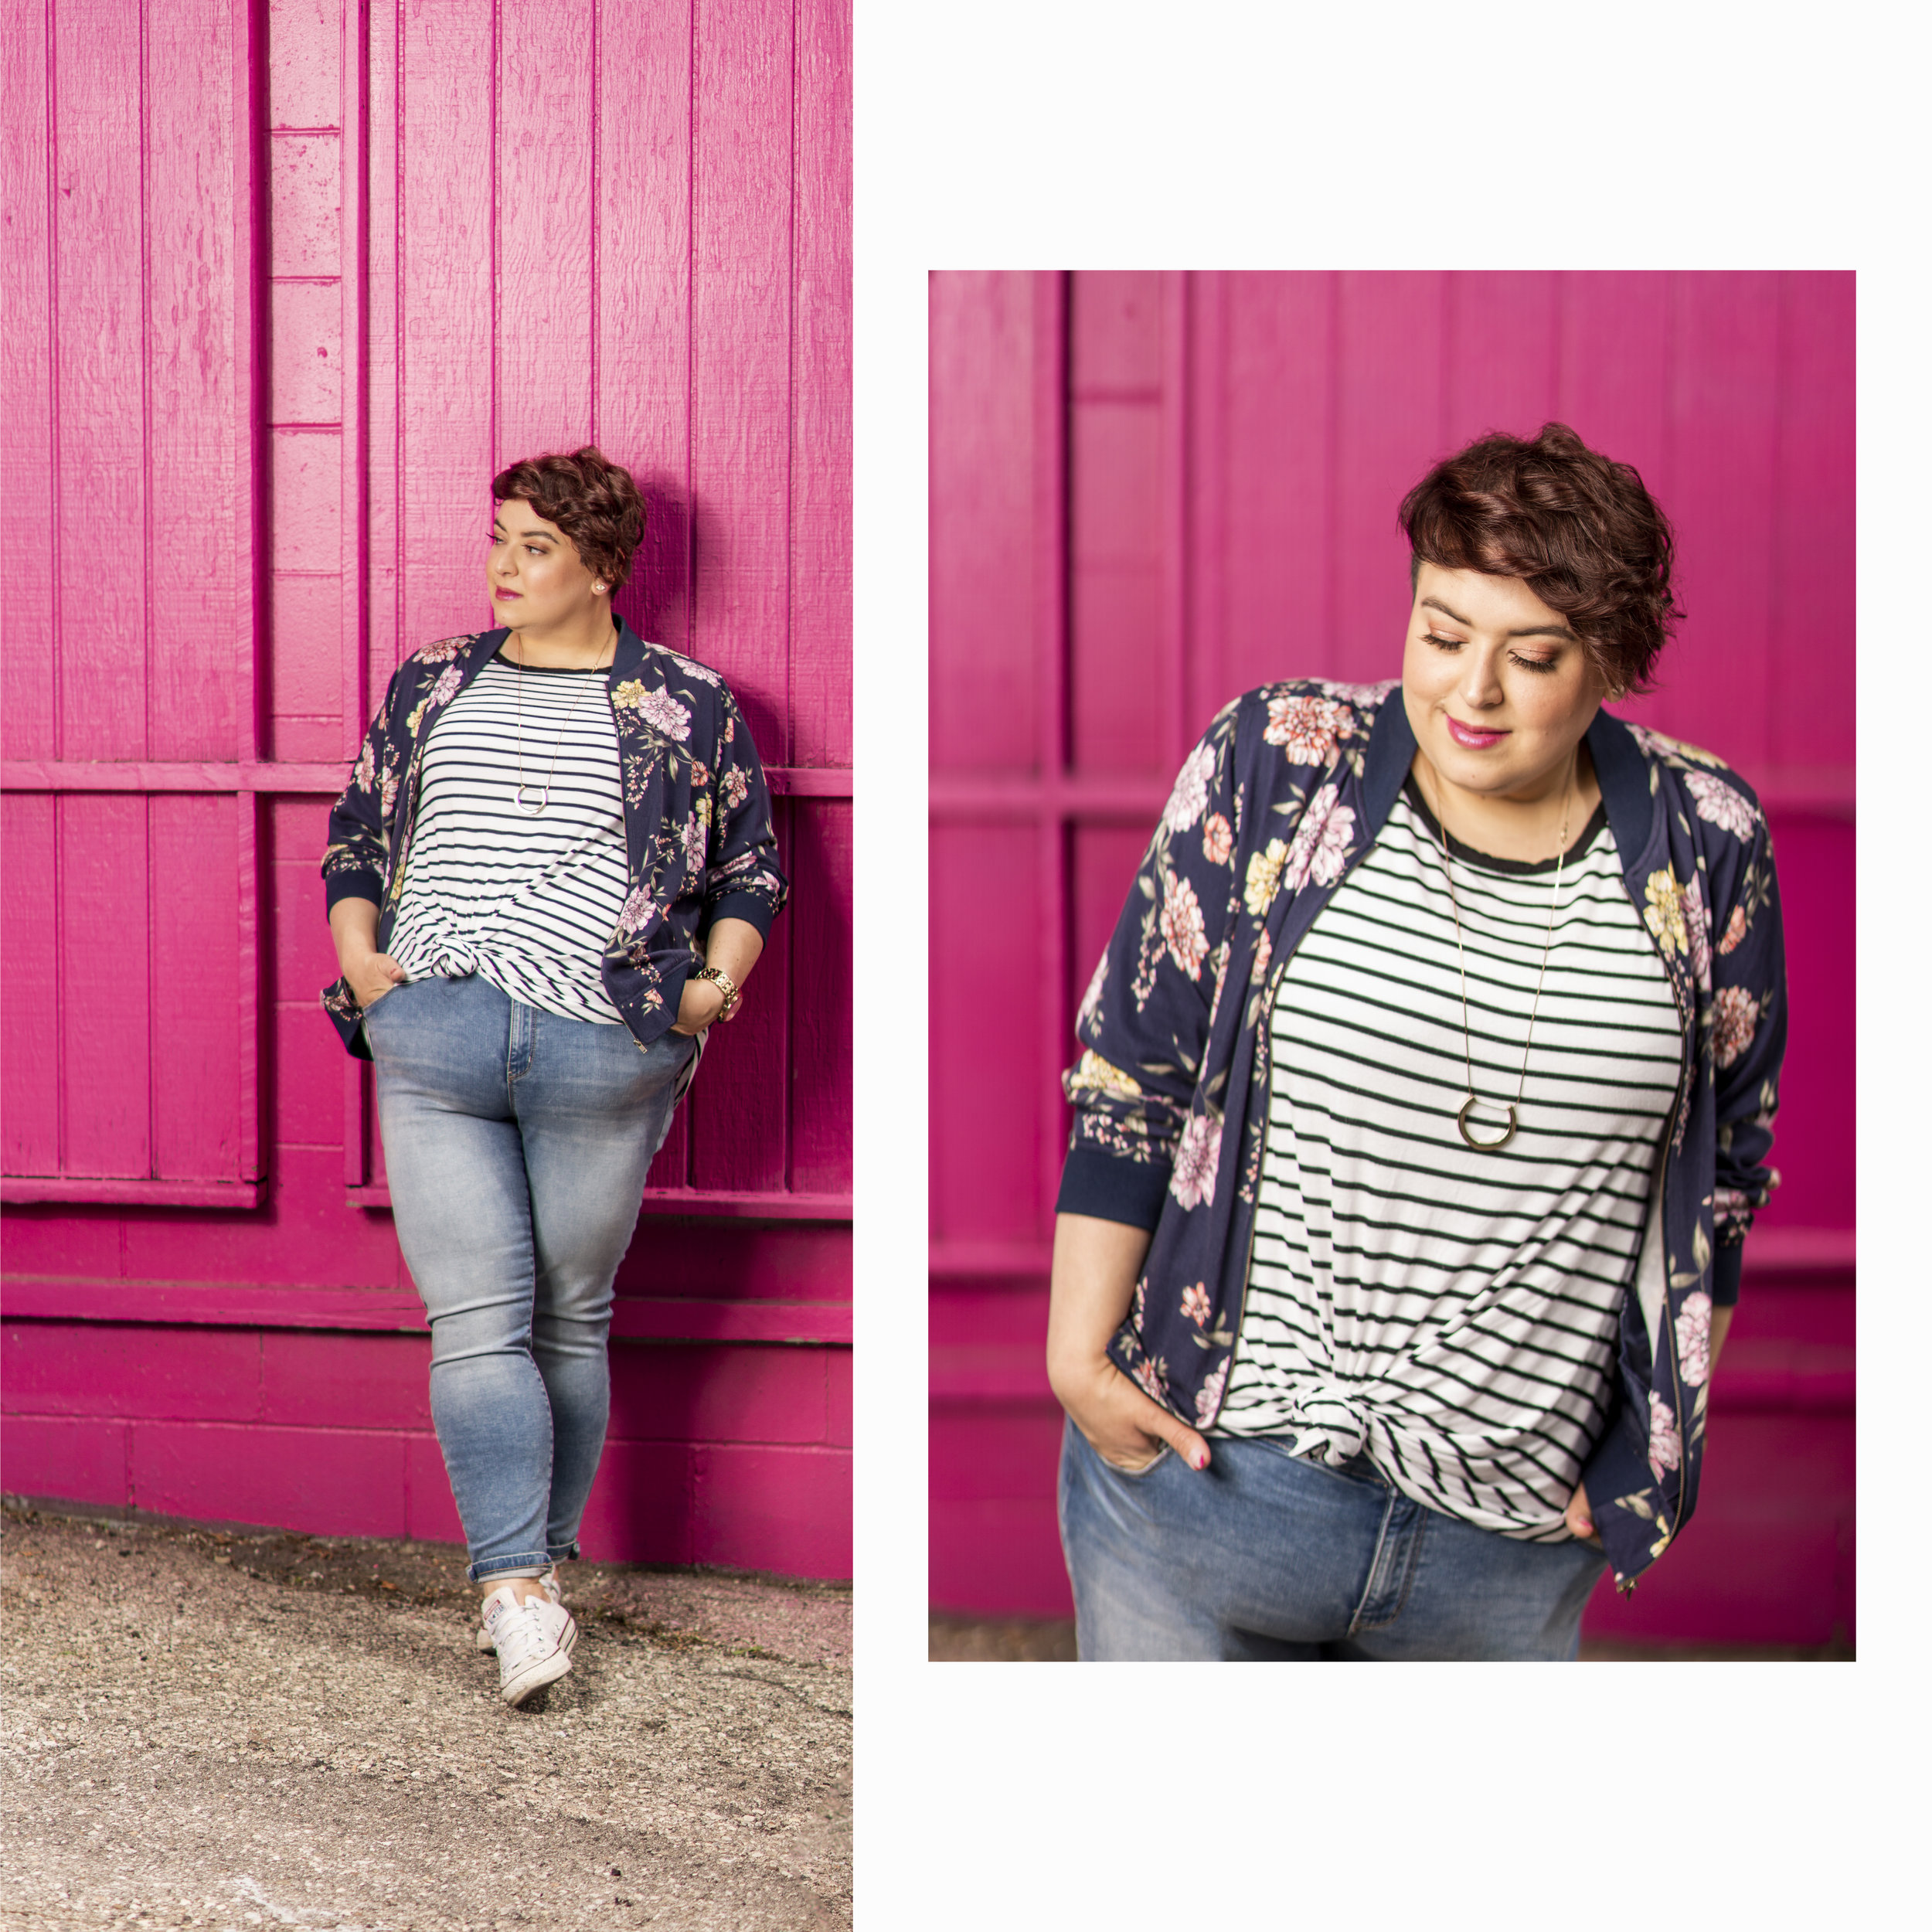 bomber - Torrid  | top - Forever 21+ |  jeans - Reitmans  | shoes - Converse | necklace - H&M | watch - Guess